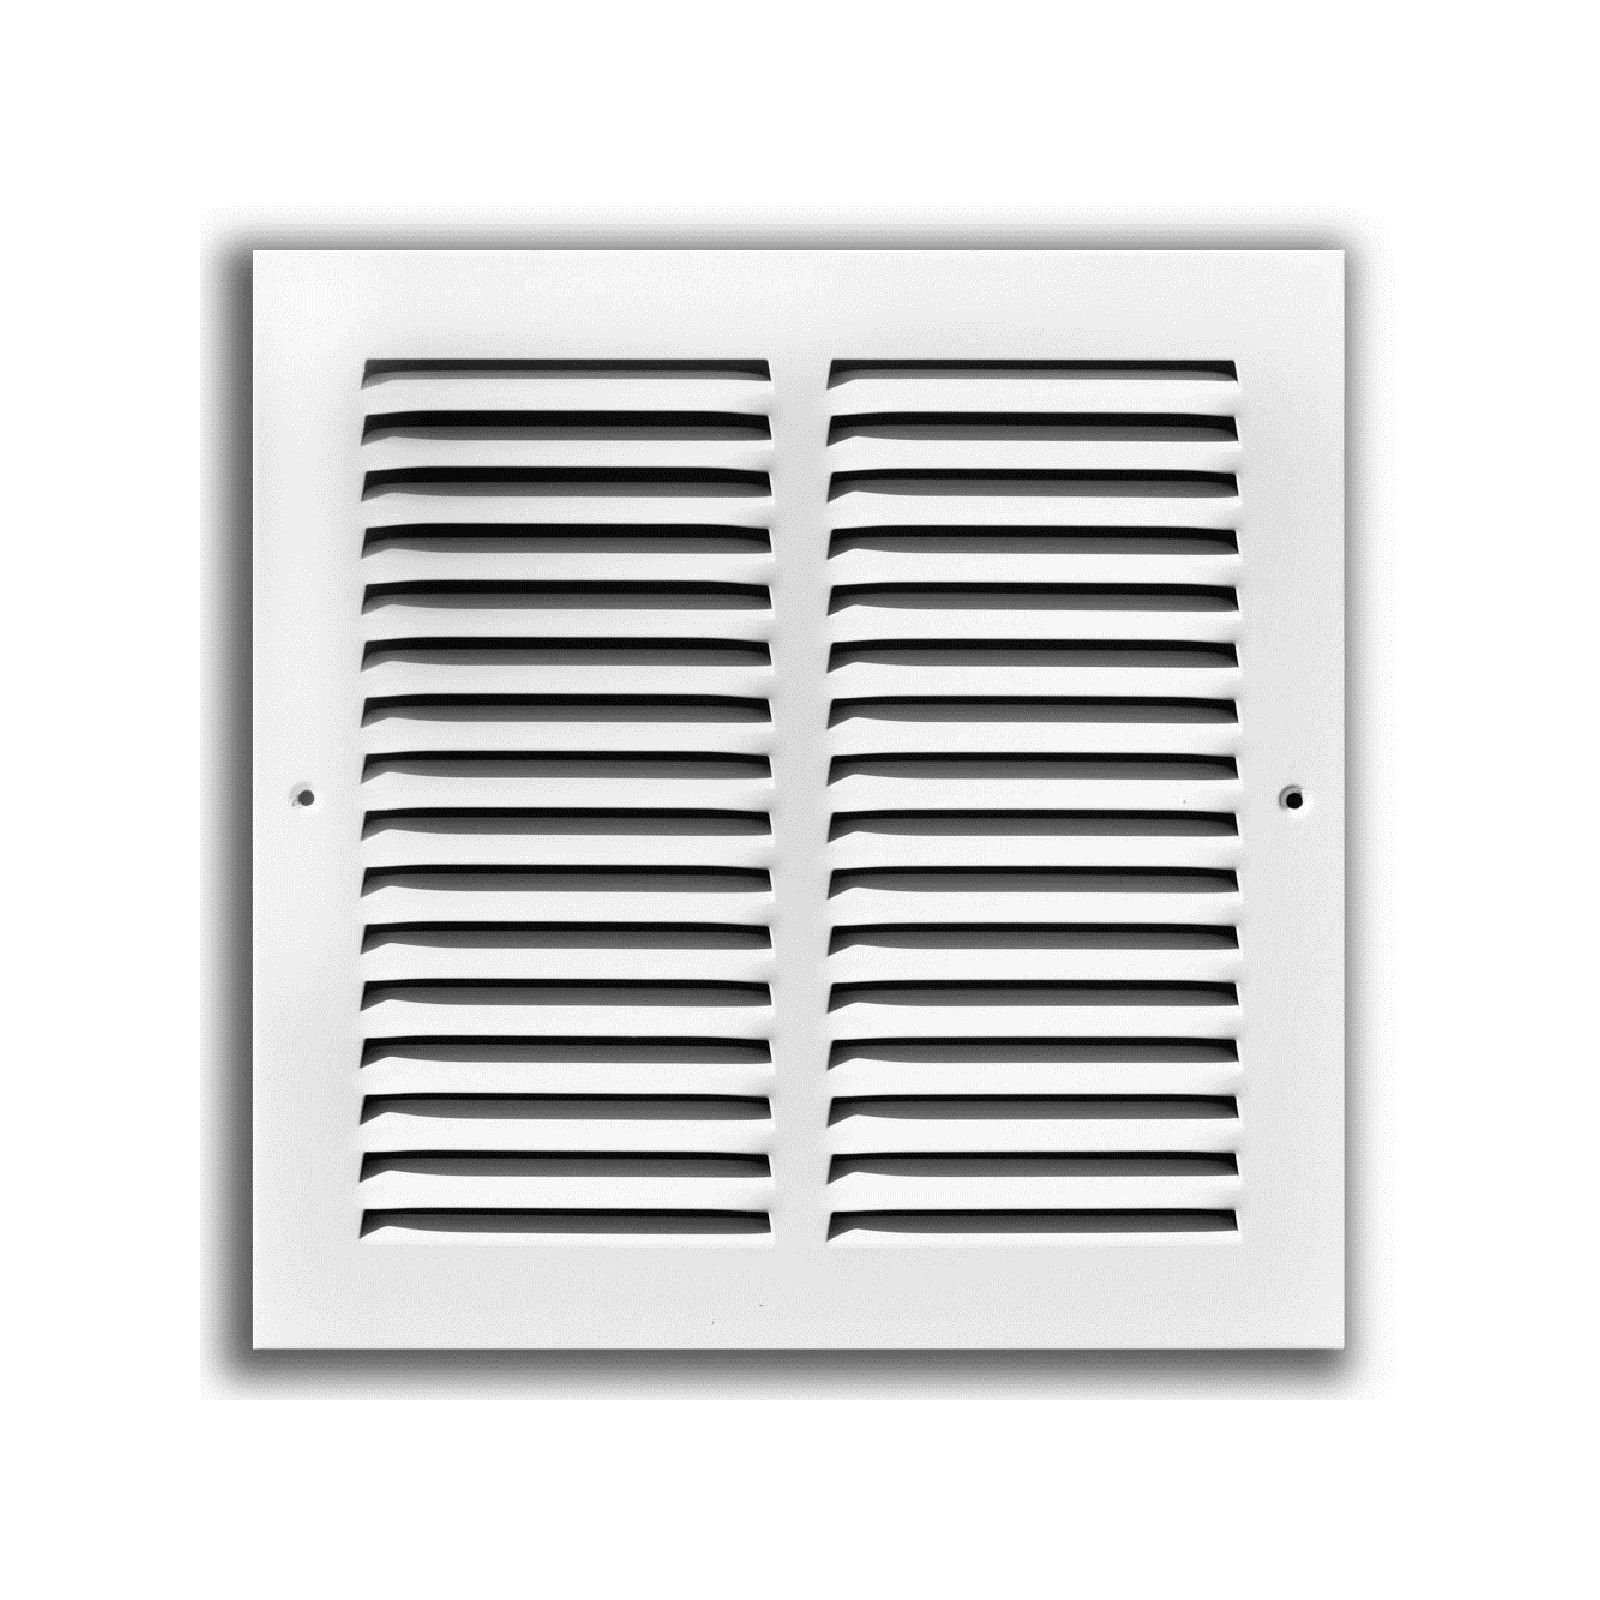 "TRUaire 170 12X08 - Steel Return Air Grille - 1/2"" Spaced Fin, White, 12"" X 08"""